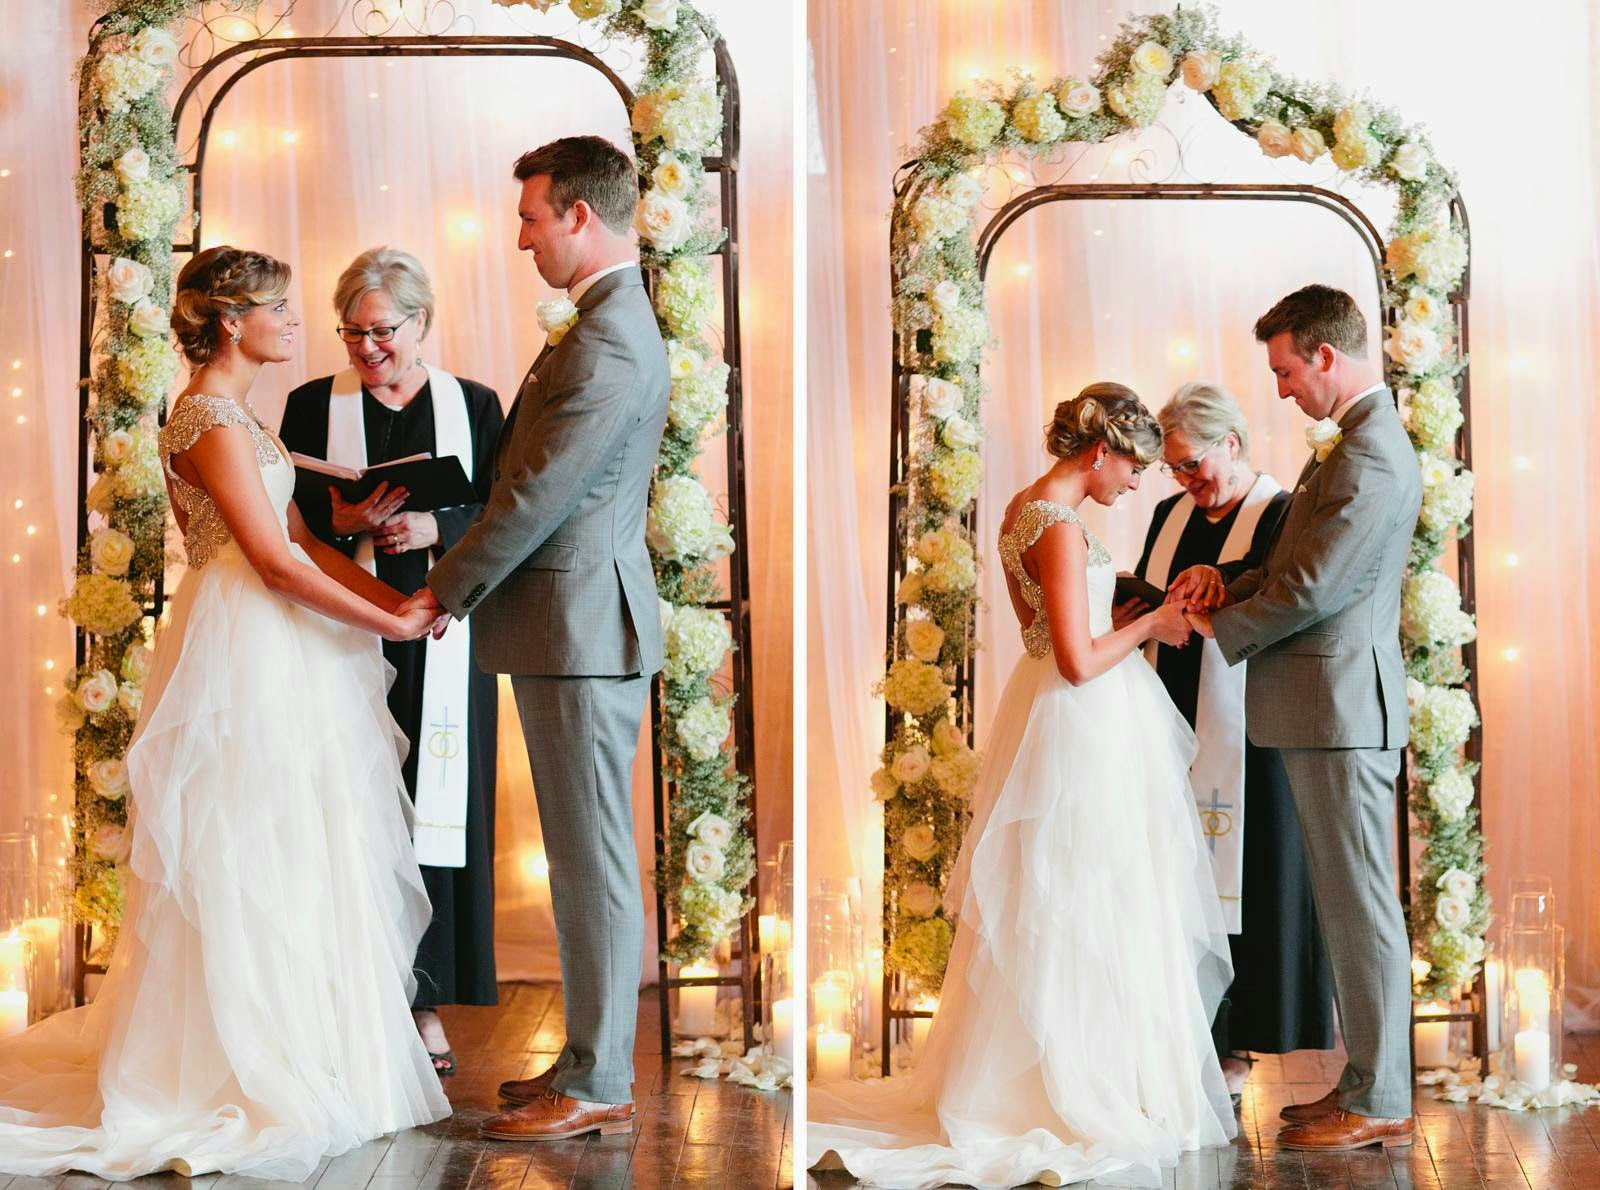 Fly Me To The Moon: Real Wedding: Bride Is Stunning In